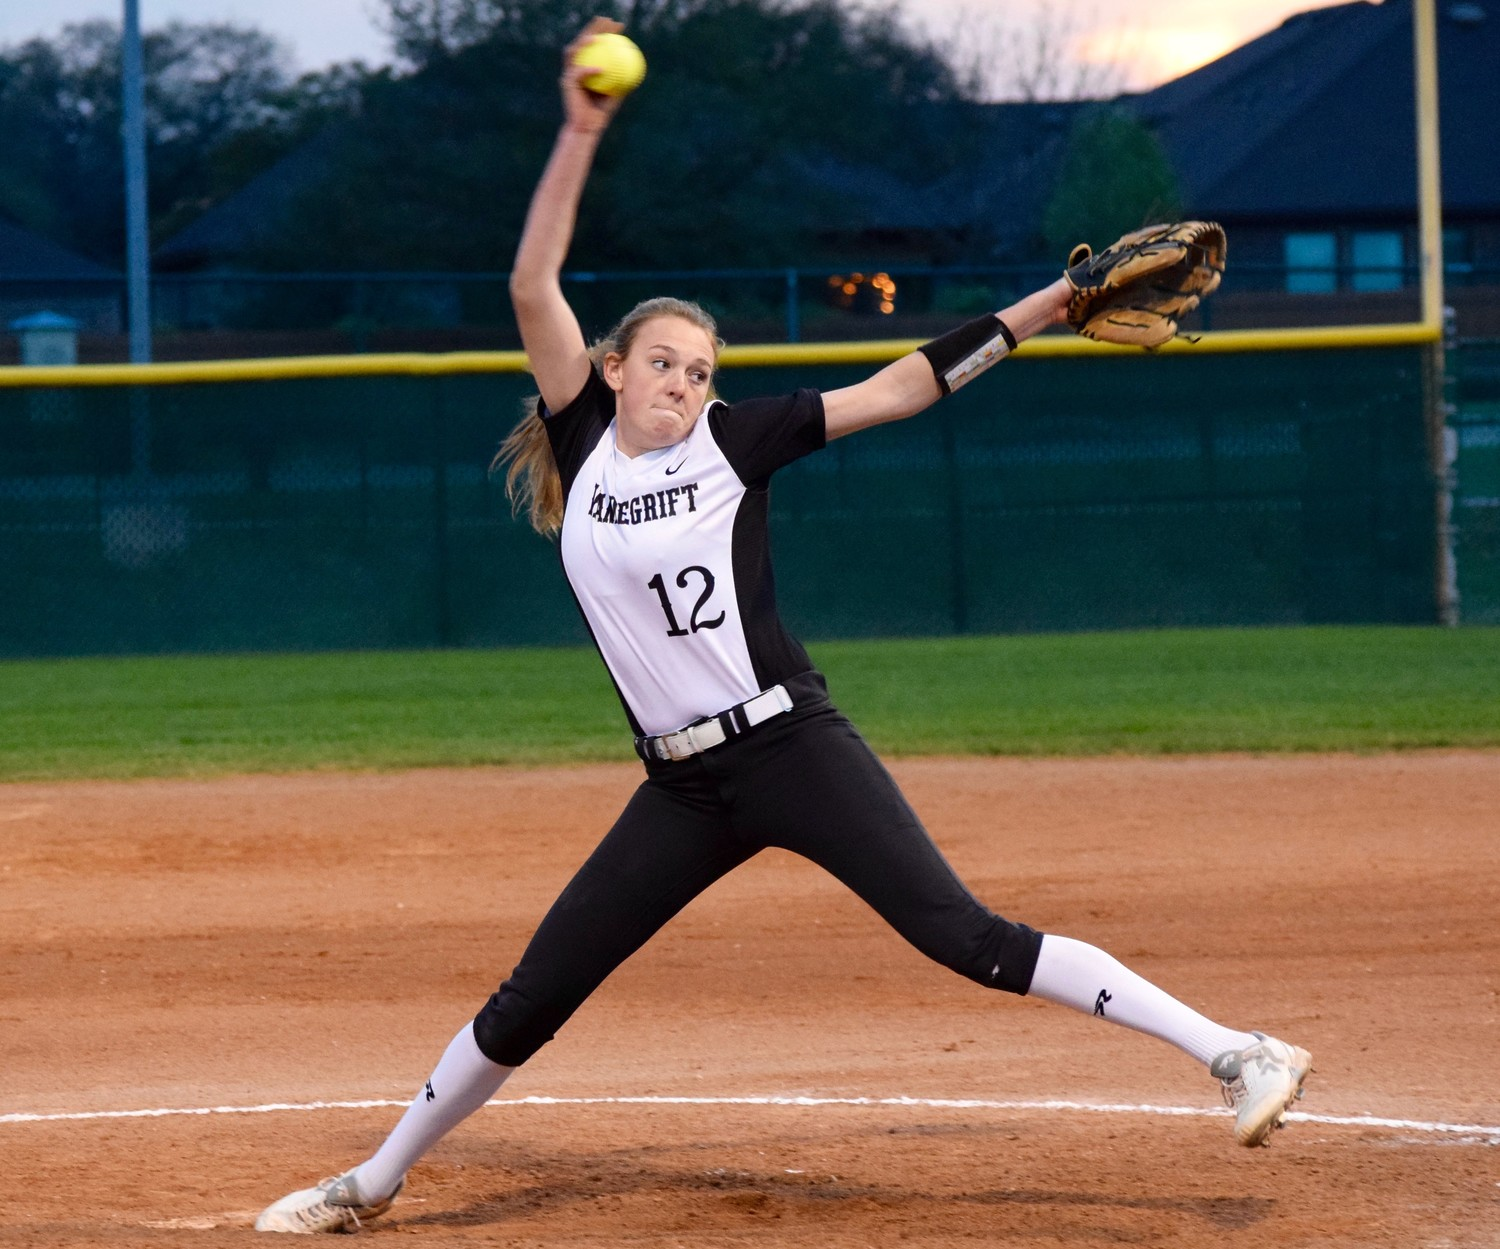 Sydney Wunch allowed two runs and eight hits with three strikeouts as Vandegrift beat Vista Ridge 5-2 on Monday for its first district win this season.